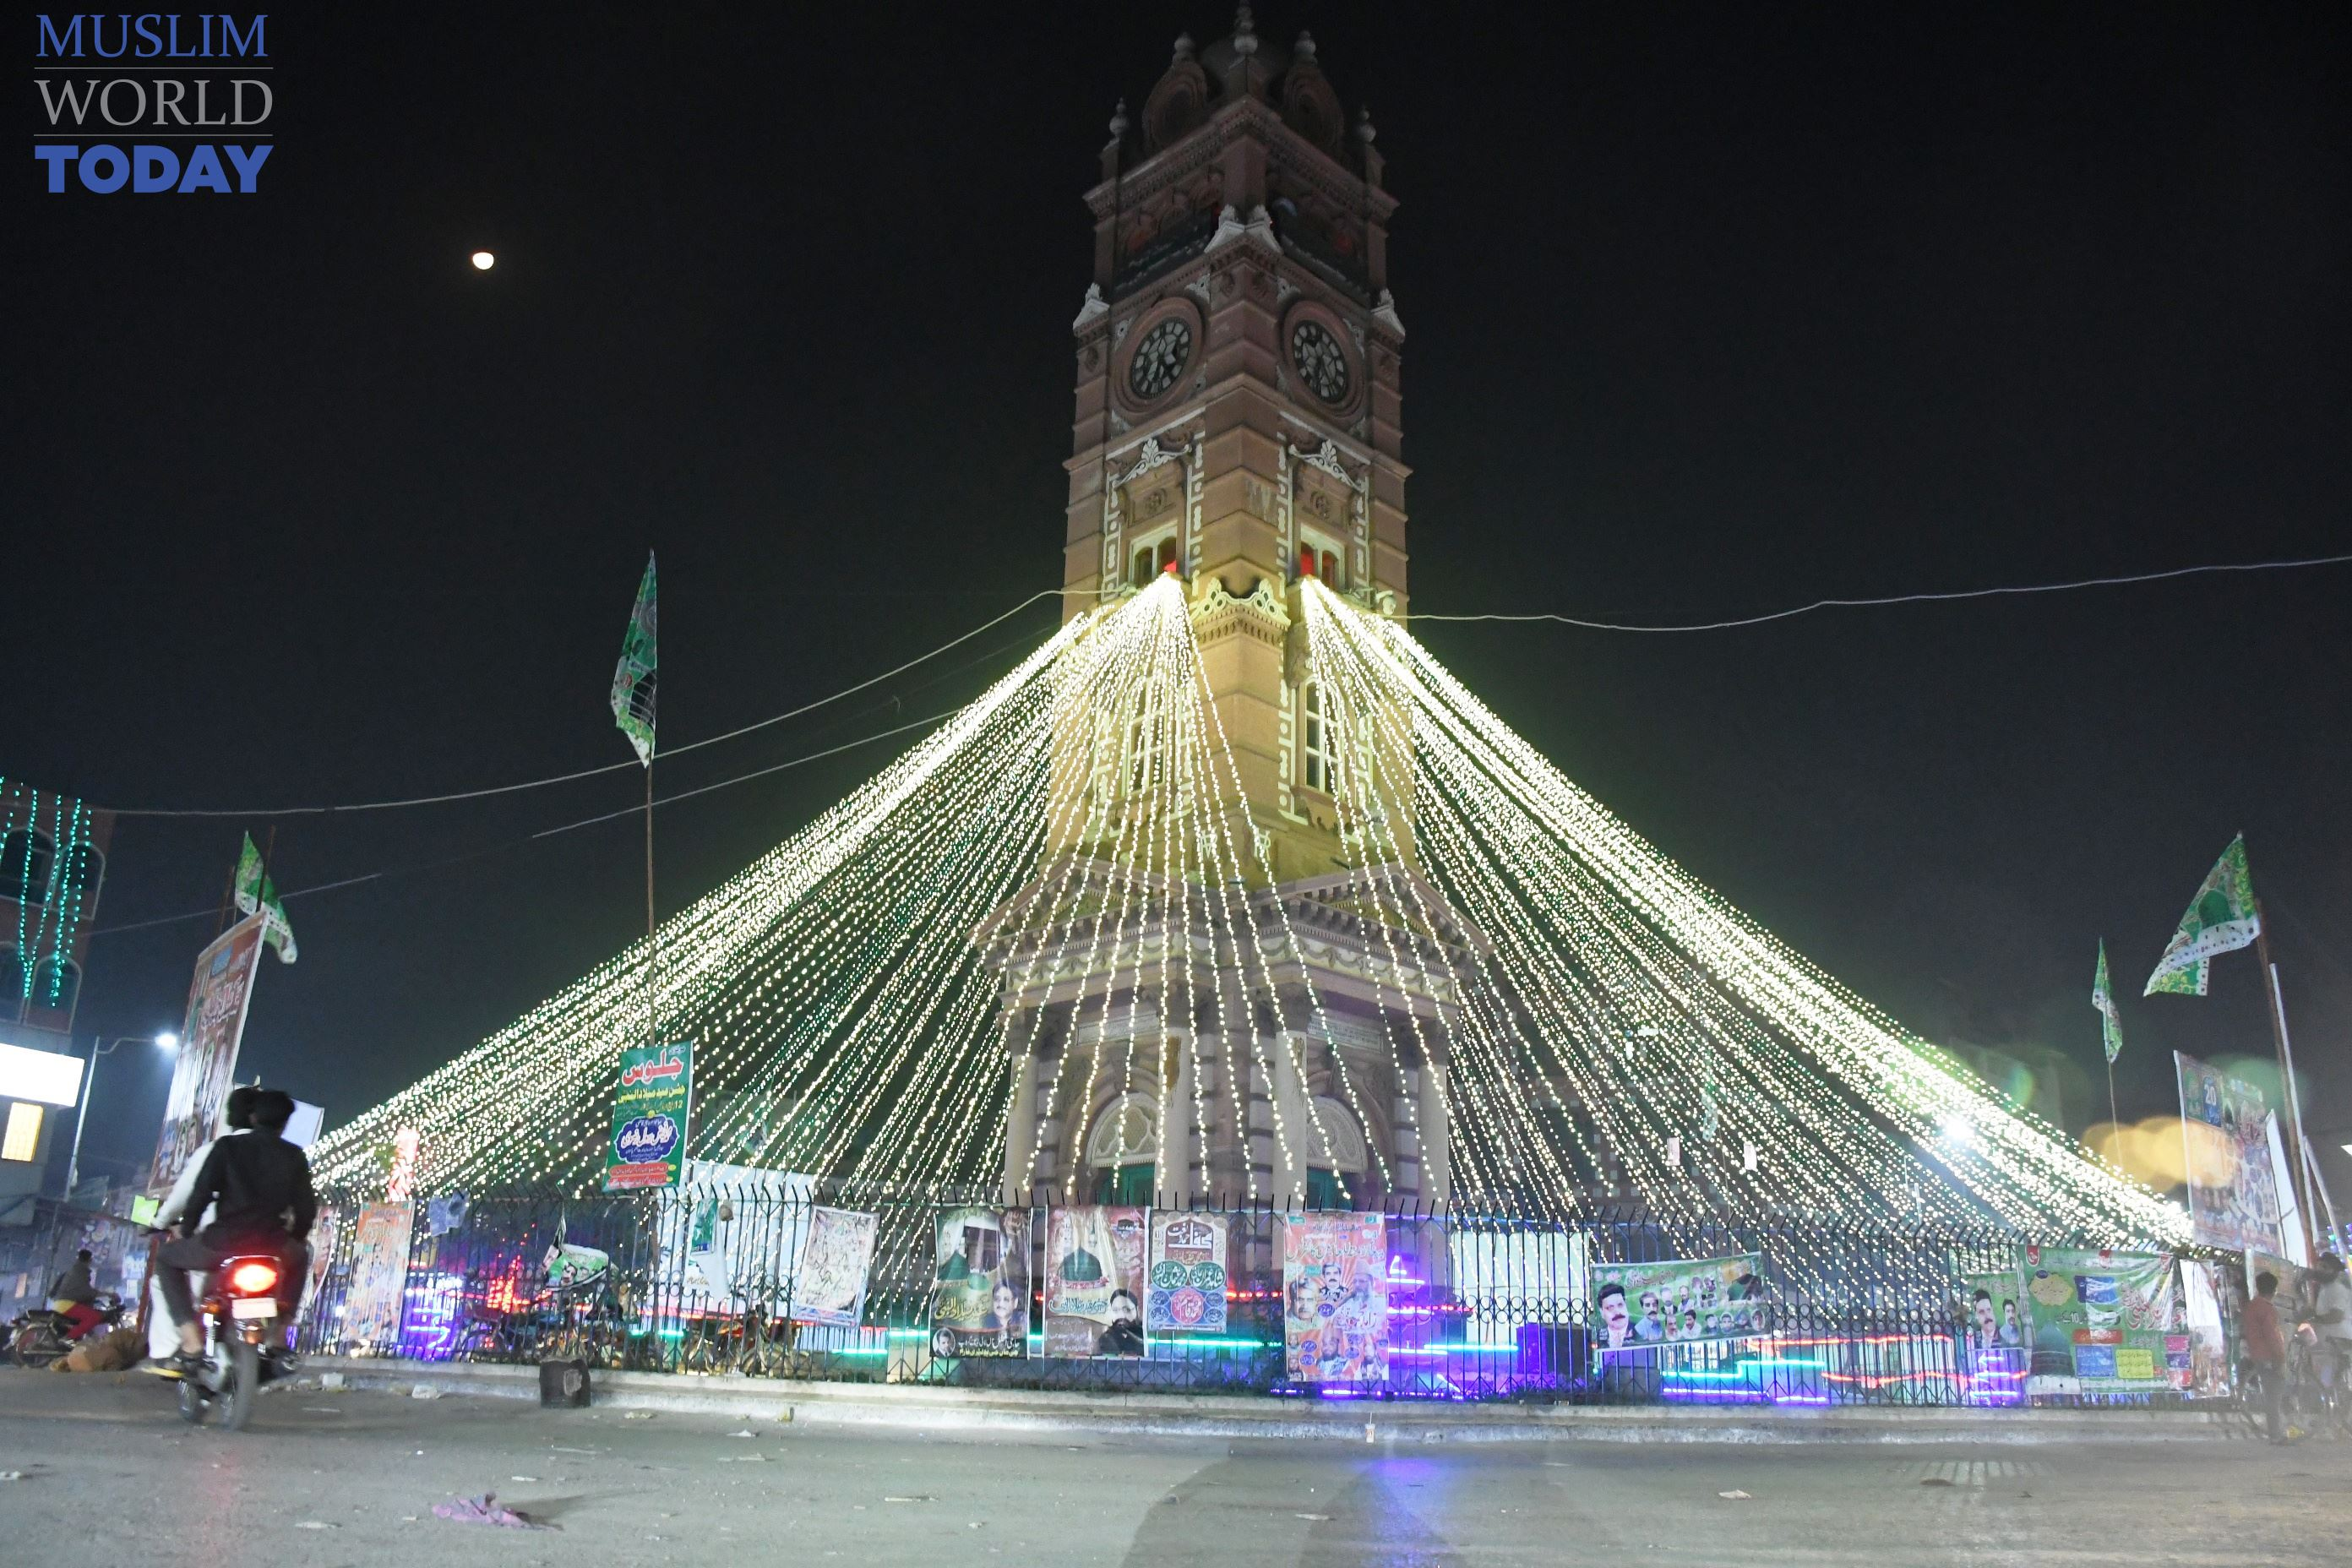 Faisalabad's clock Tower is decorated with colorful lights